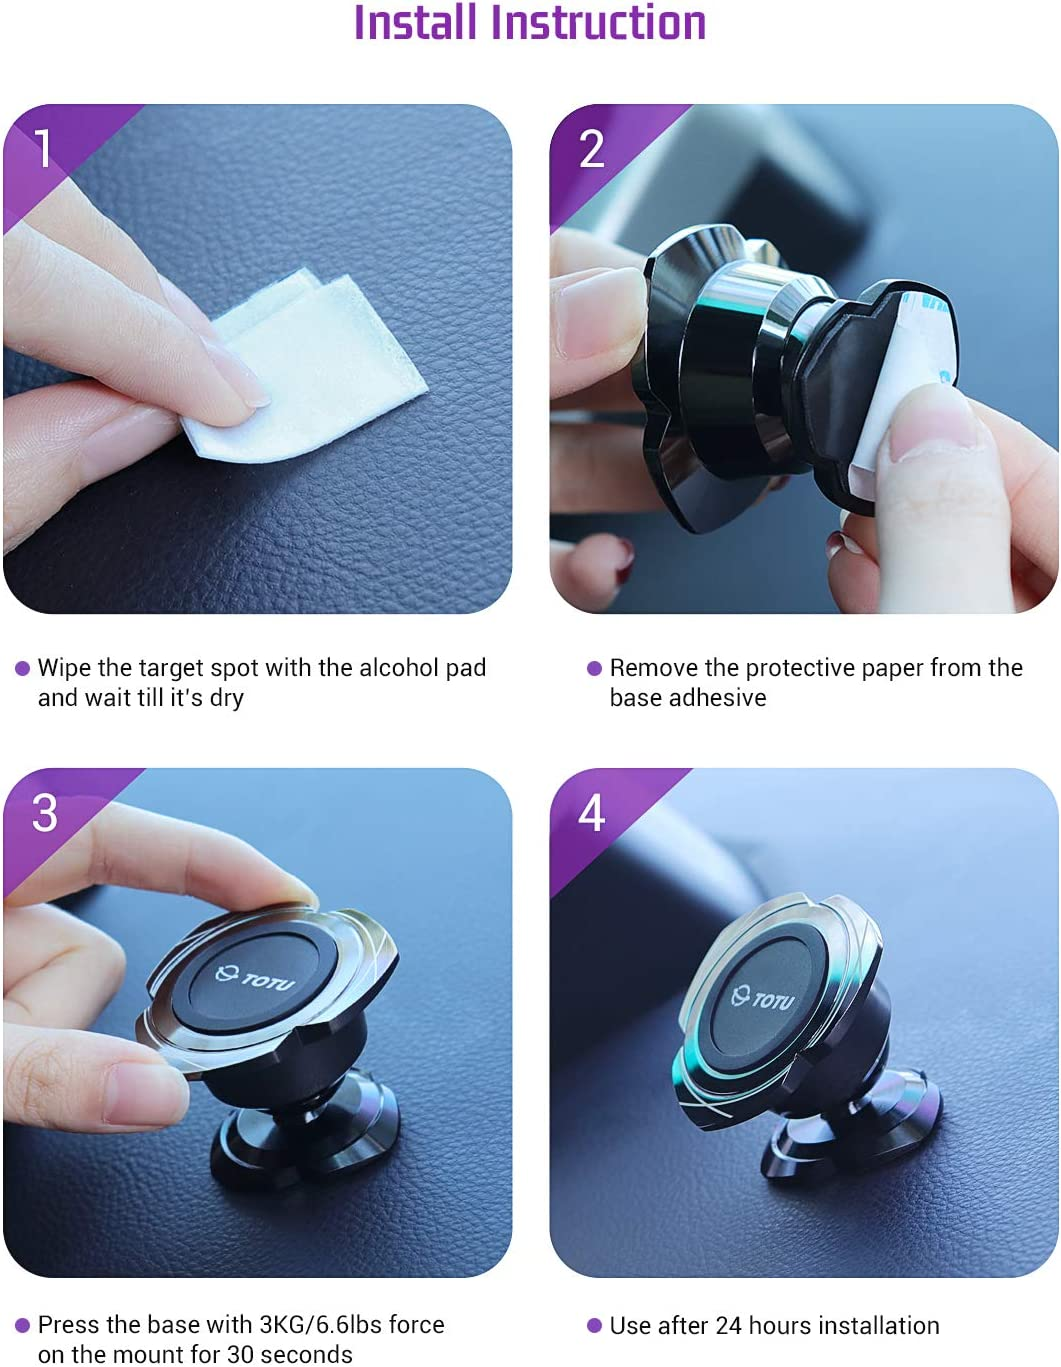 TOTU Magnetic Car Phone Holder Samsung S10,Google Pixel 3 XL,LG and More Car Phone Mount Universal Adjustable Dashboard Magnetic Car Phone Mount for Mini Tablets and iPhone Xs 11 XR